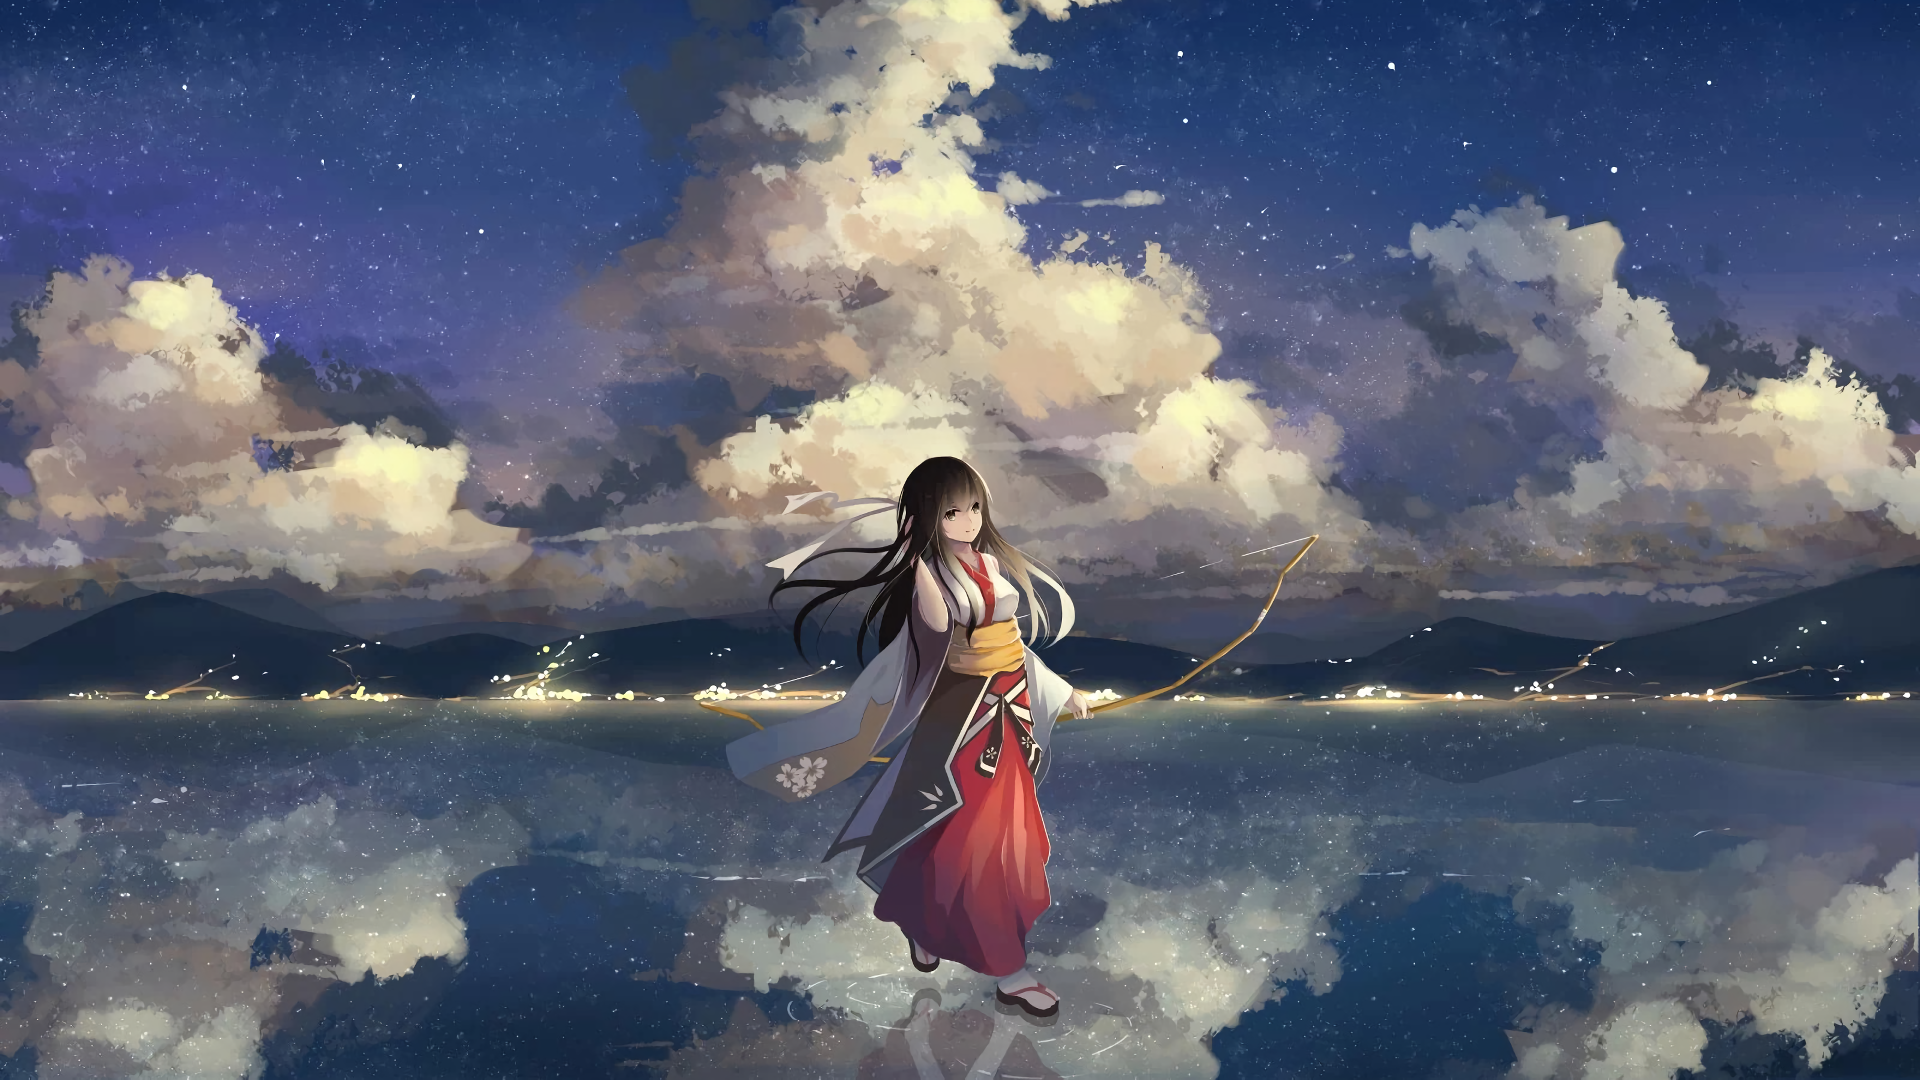 Wallpapers ID:740025